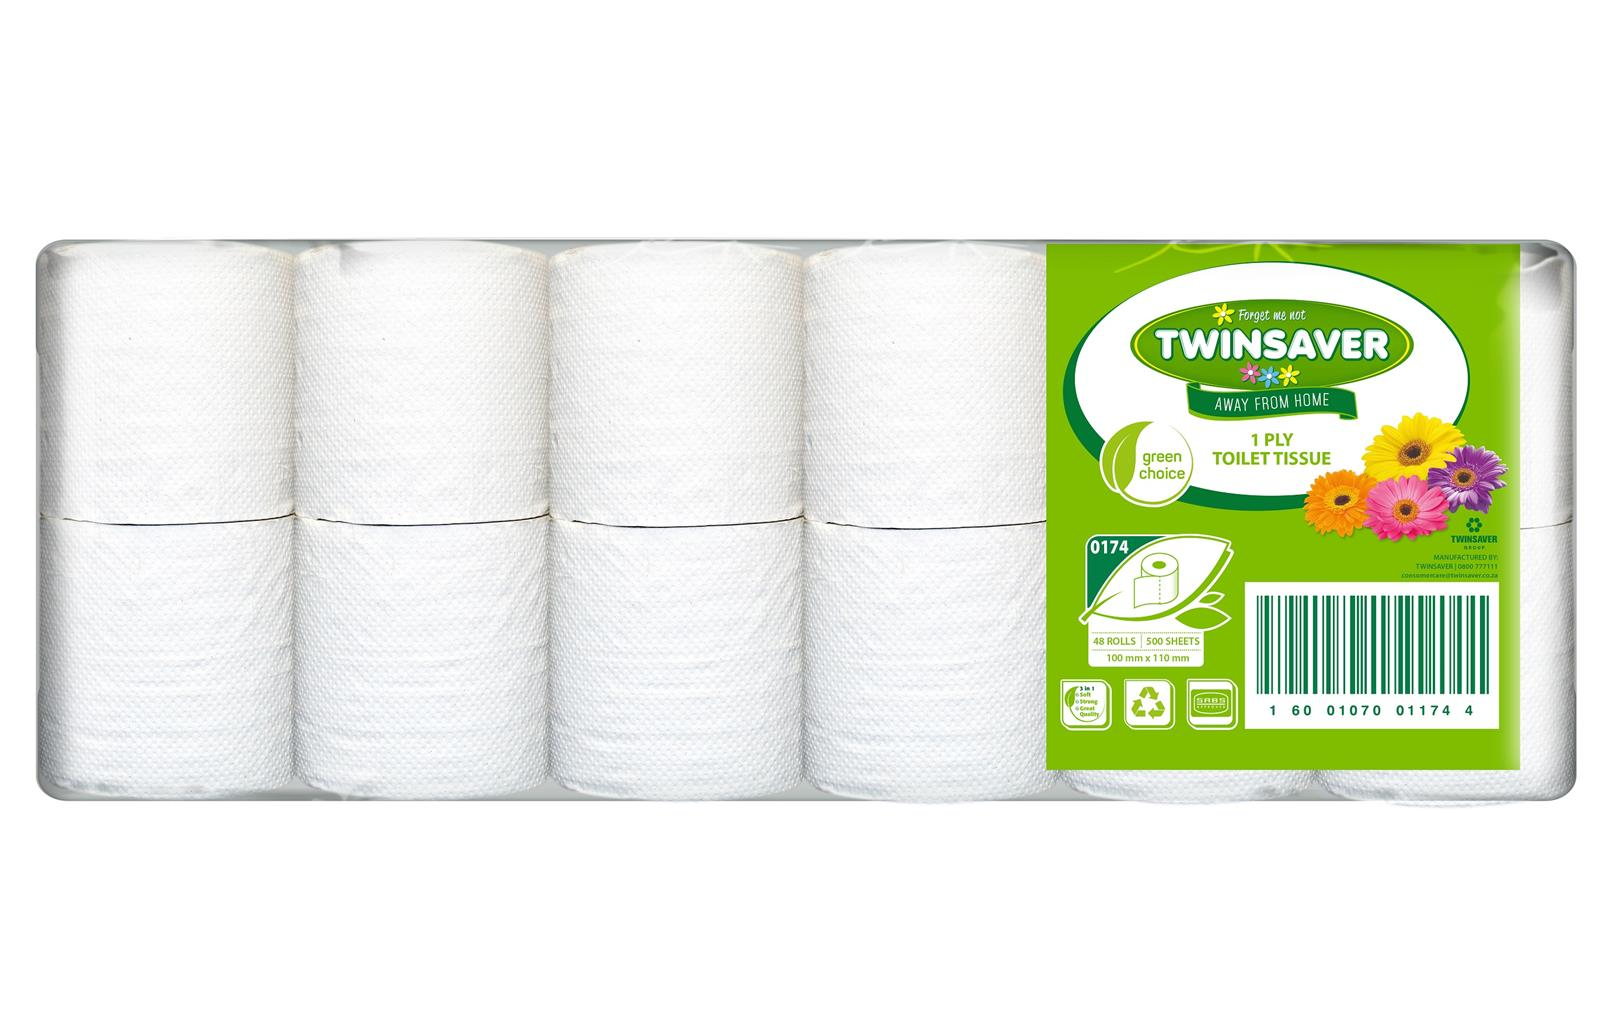 CRAZY TOILET PAPER SPECIALS! Twinsaver 1 ply Toilet paper now only R121.00/ BALE of 48 excl. vat